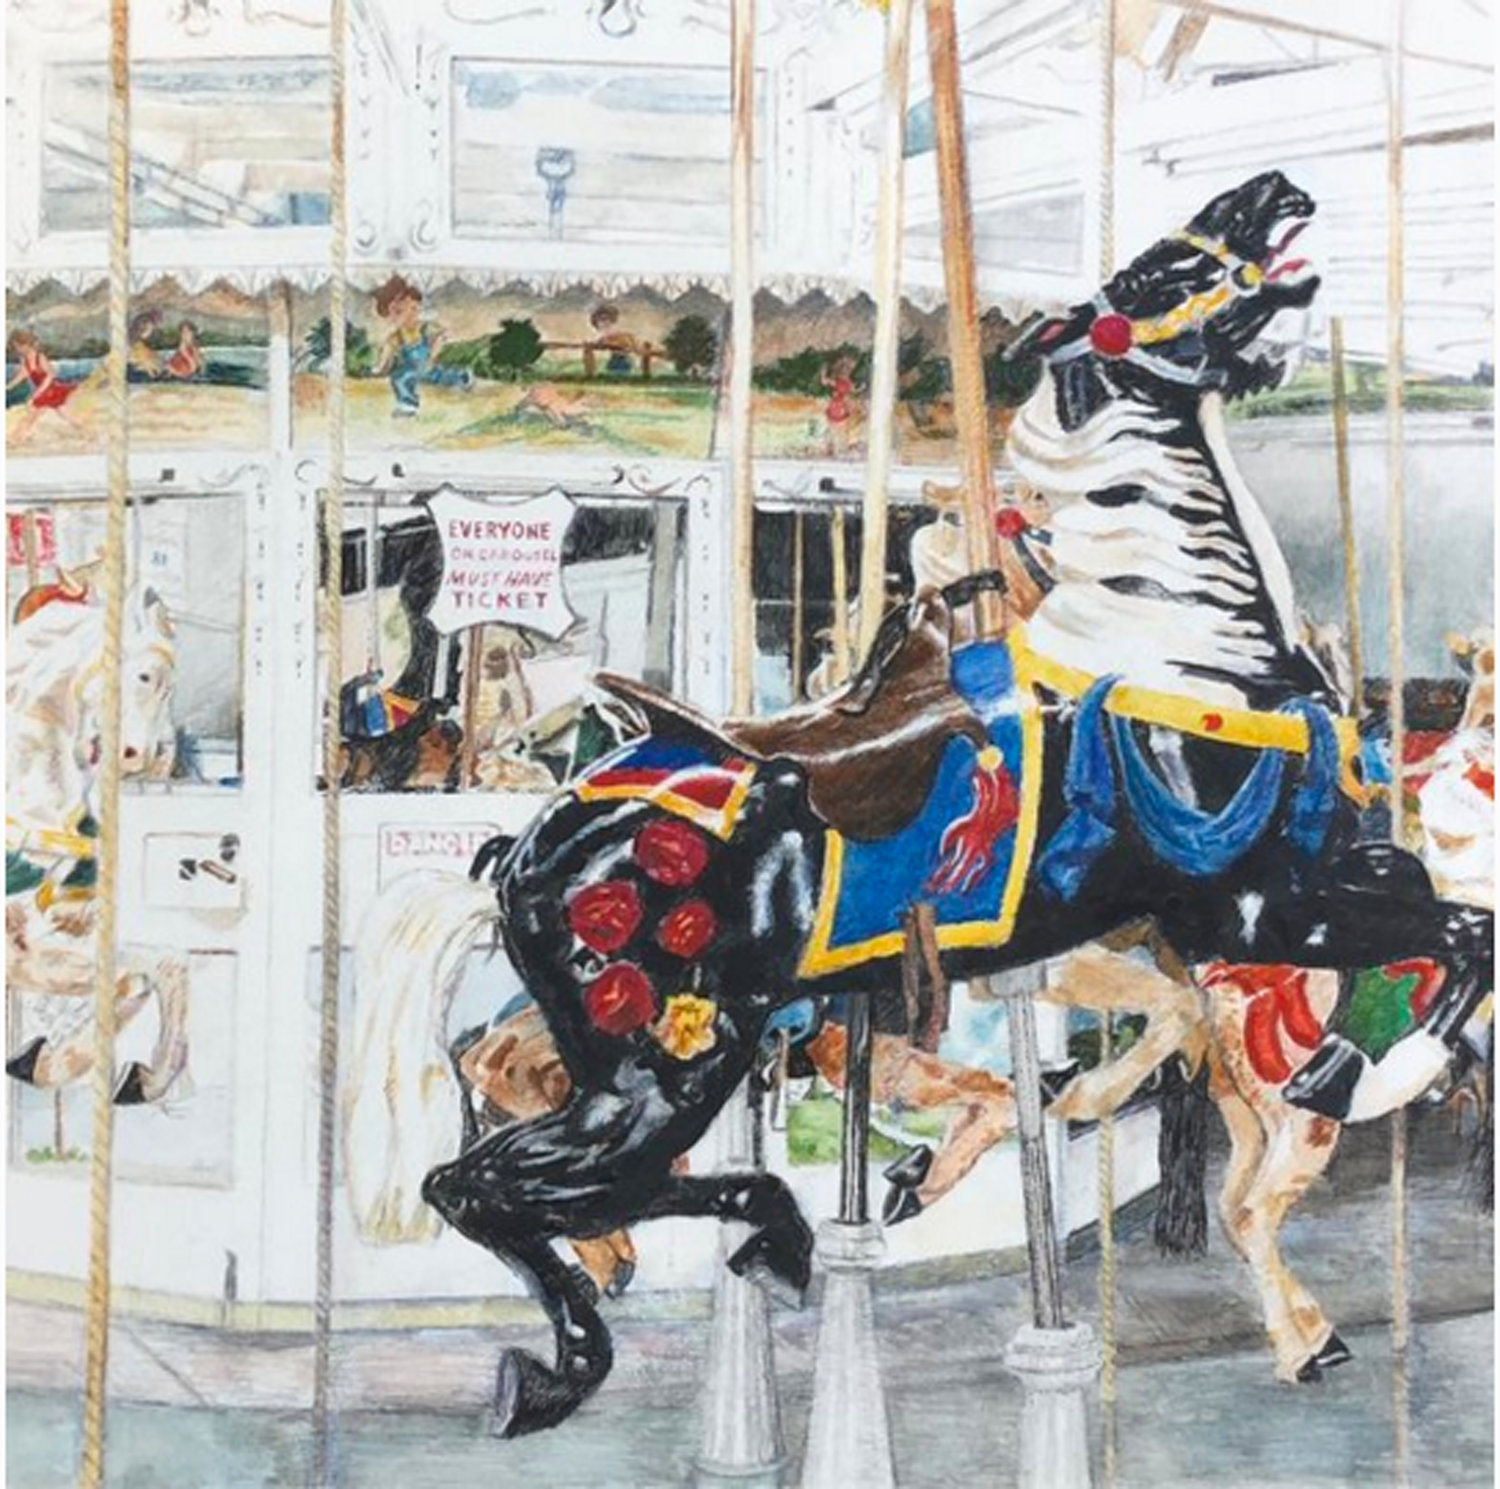 Artist Michael White, who captured Nunley's Carousel in this earlier work, has completed a new 7-by-5-foot mural of the carousel, which will be unveiled next month and later displayed at the Baldwin Long Island Rail Road station.